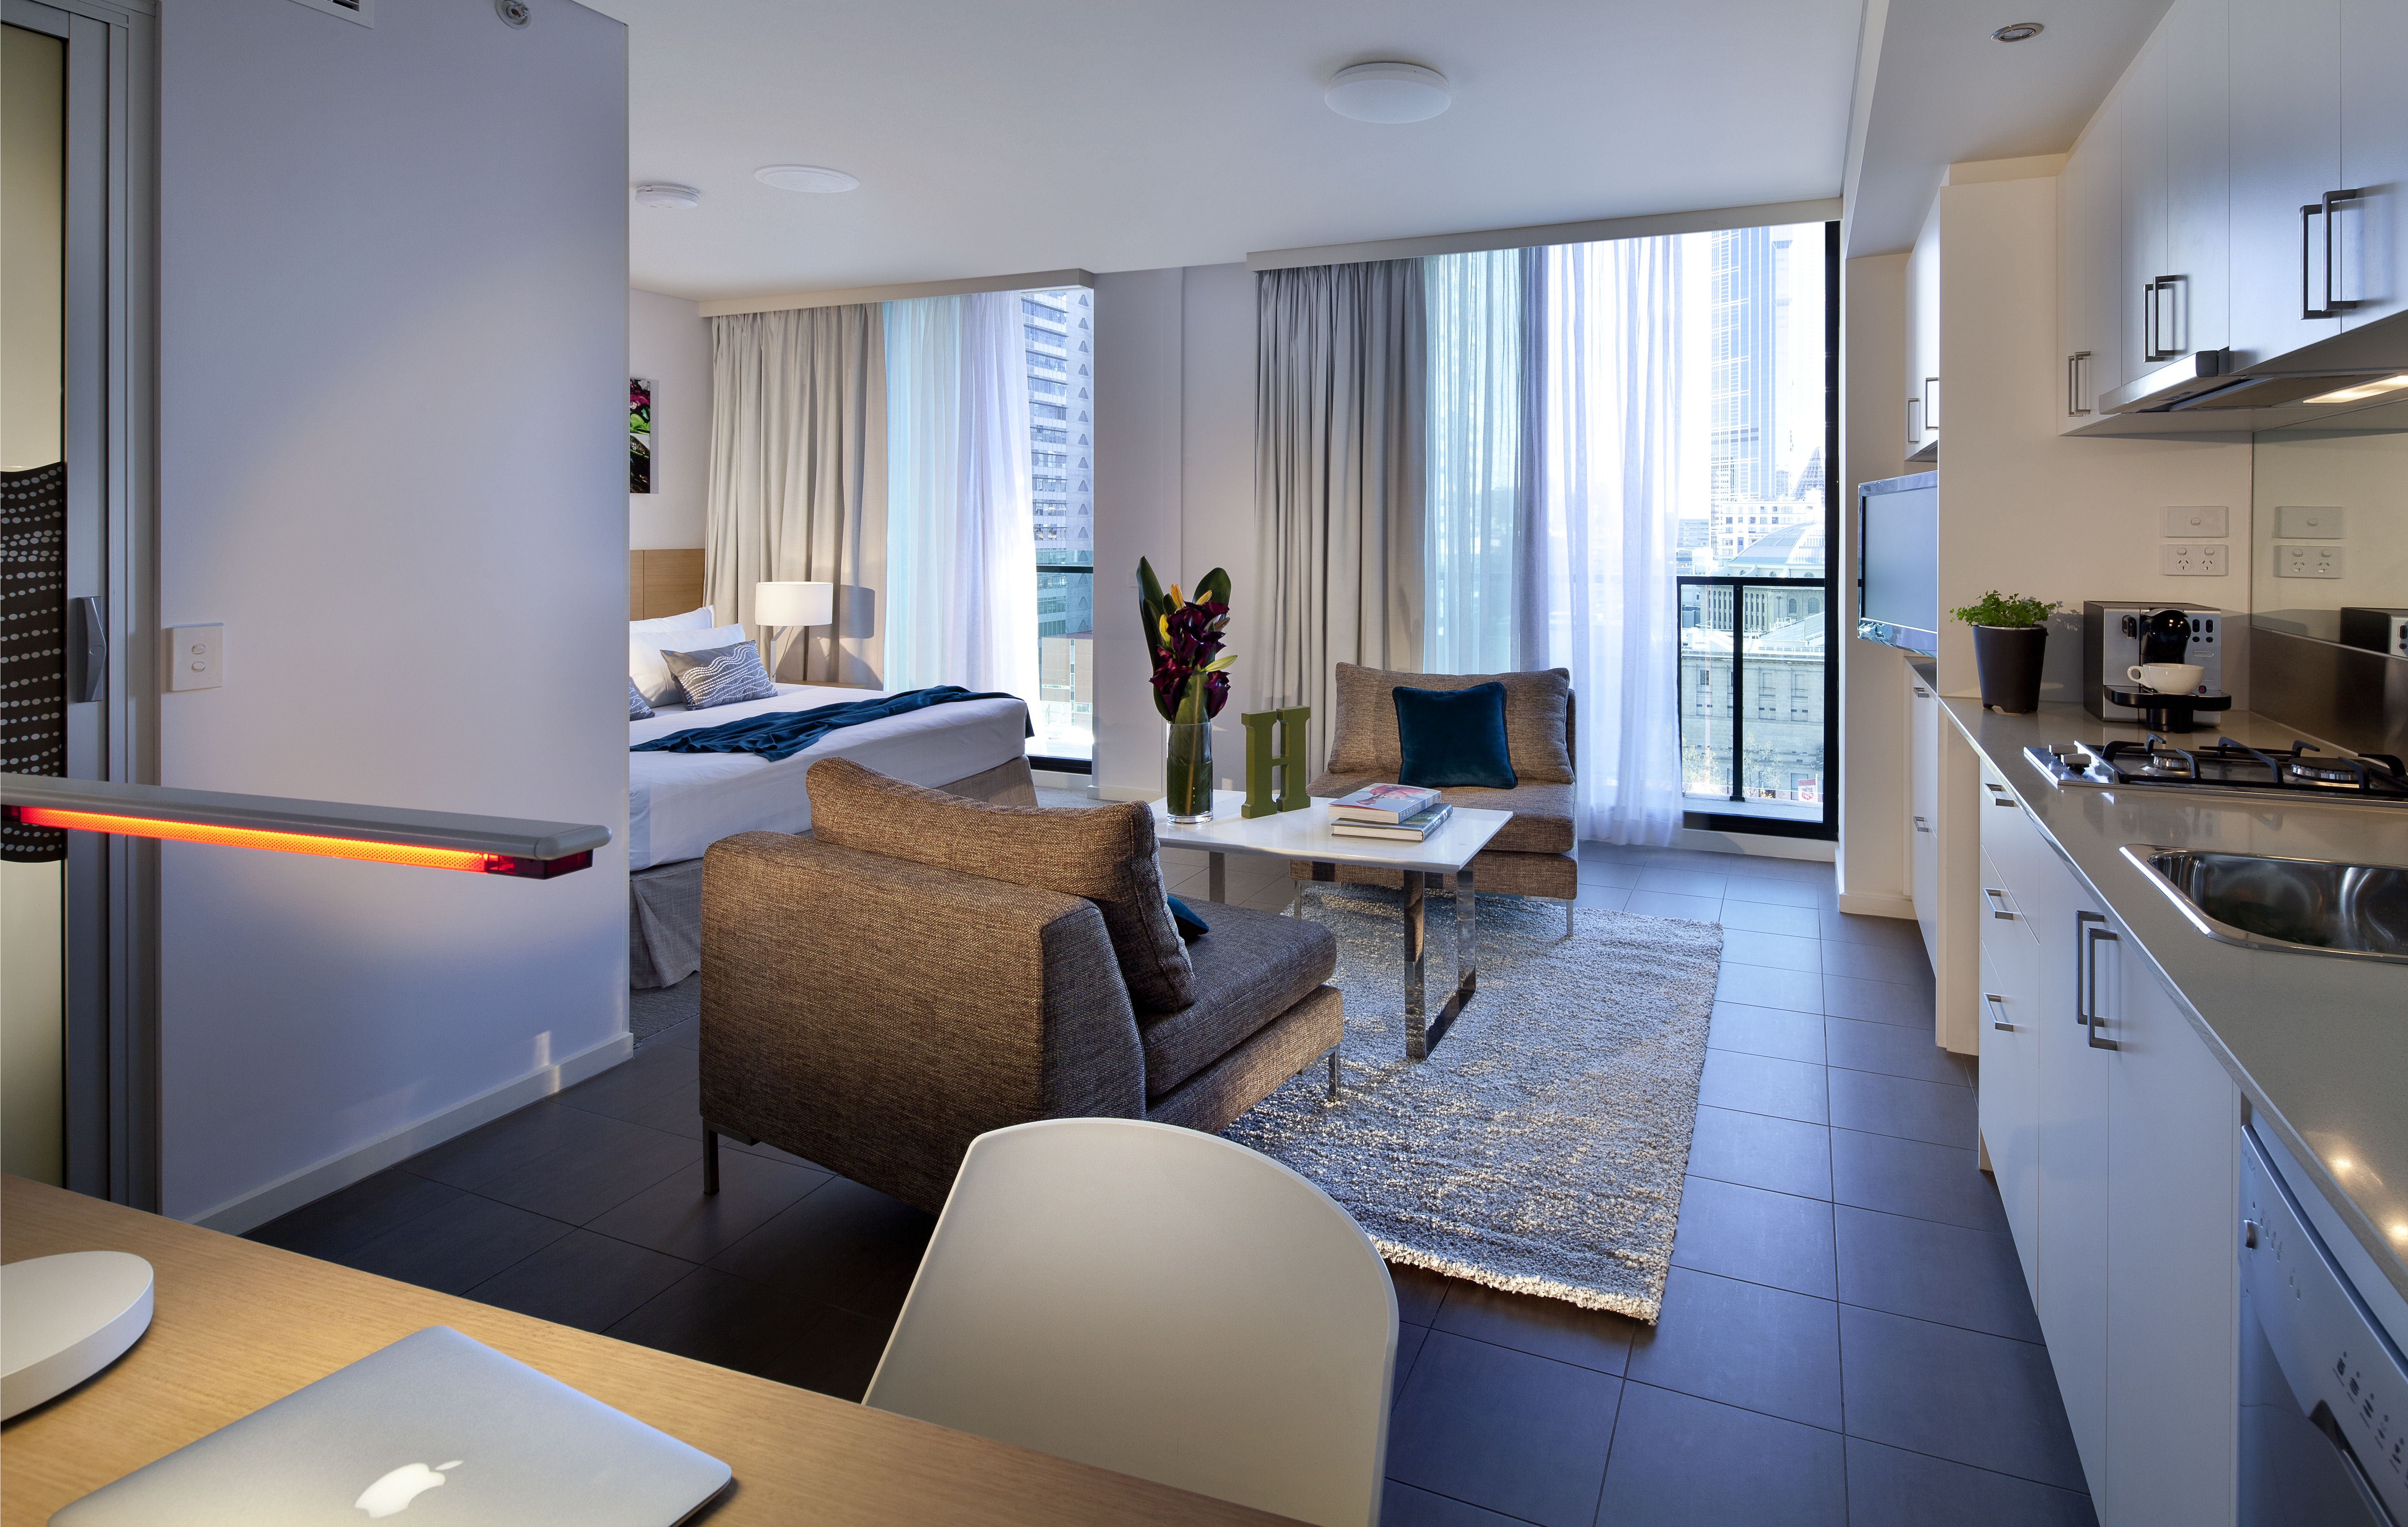 Studio Apartment Melbourne Fraser Place Melbourne Sets Gold Standards With Chic All Suite